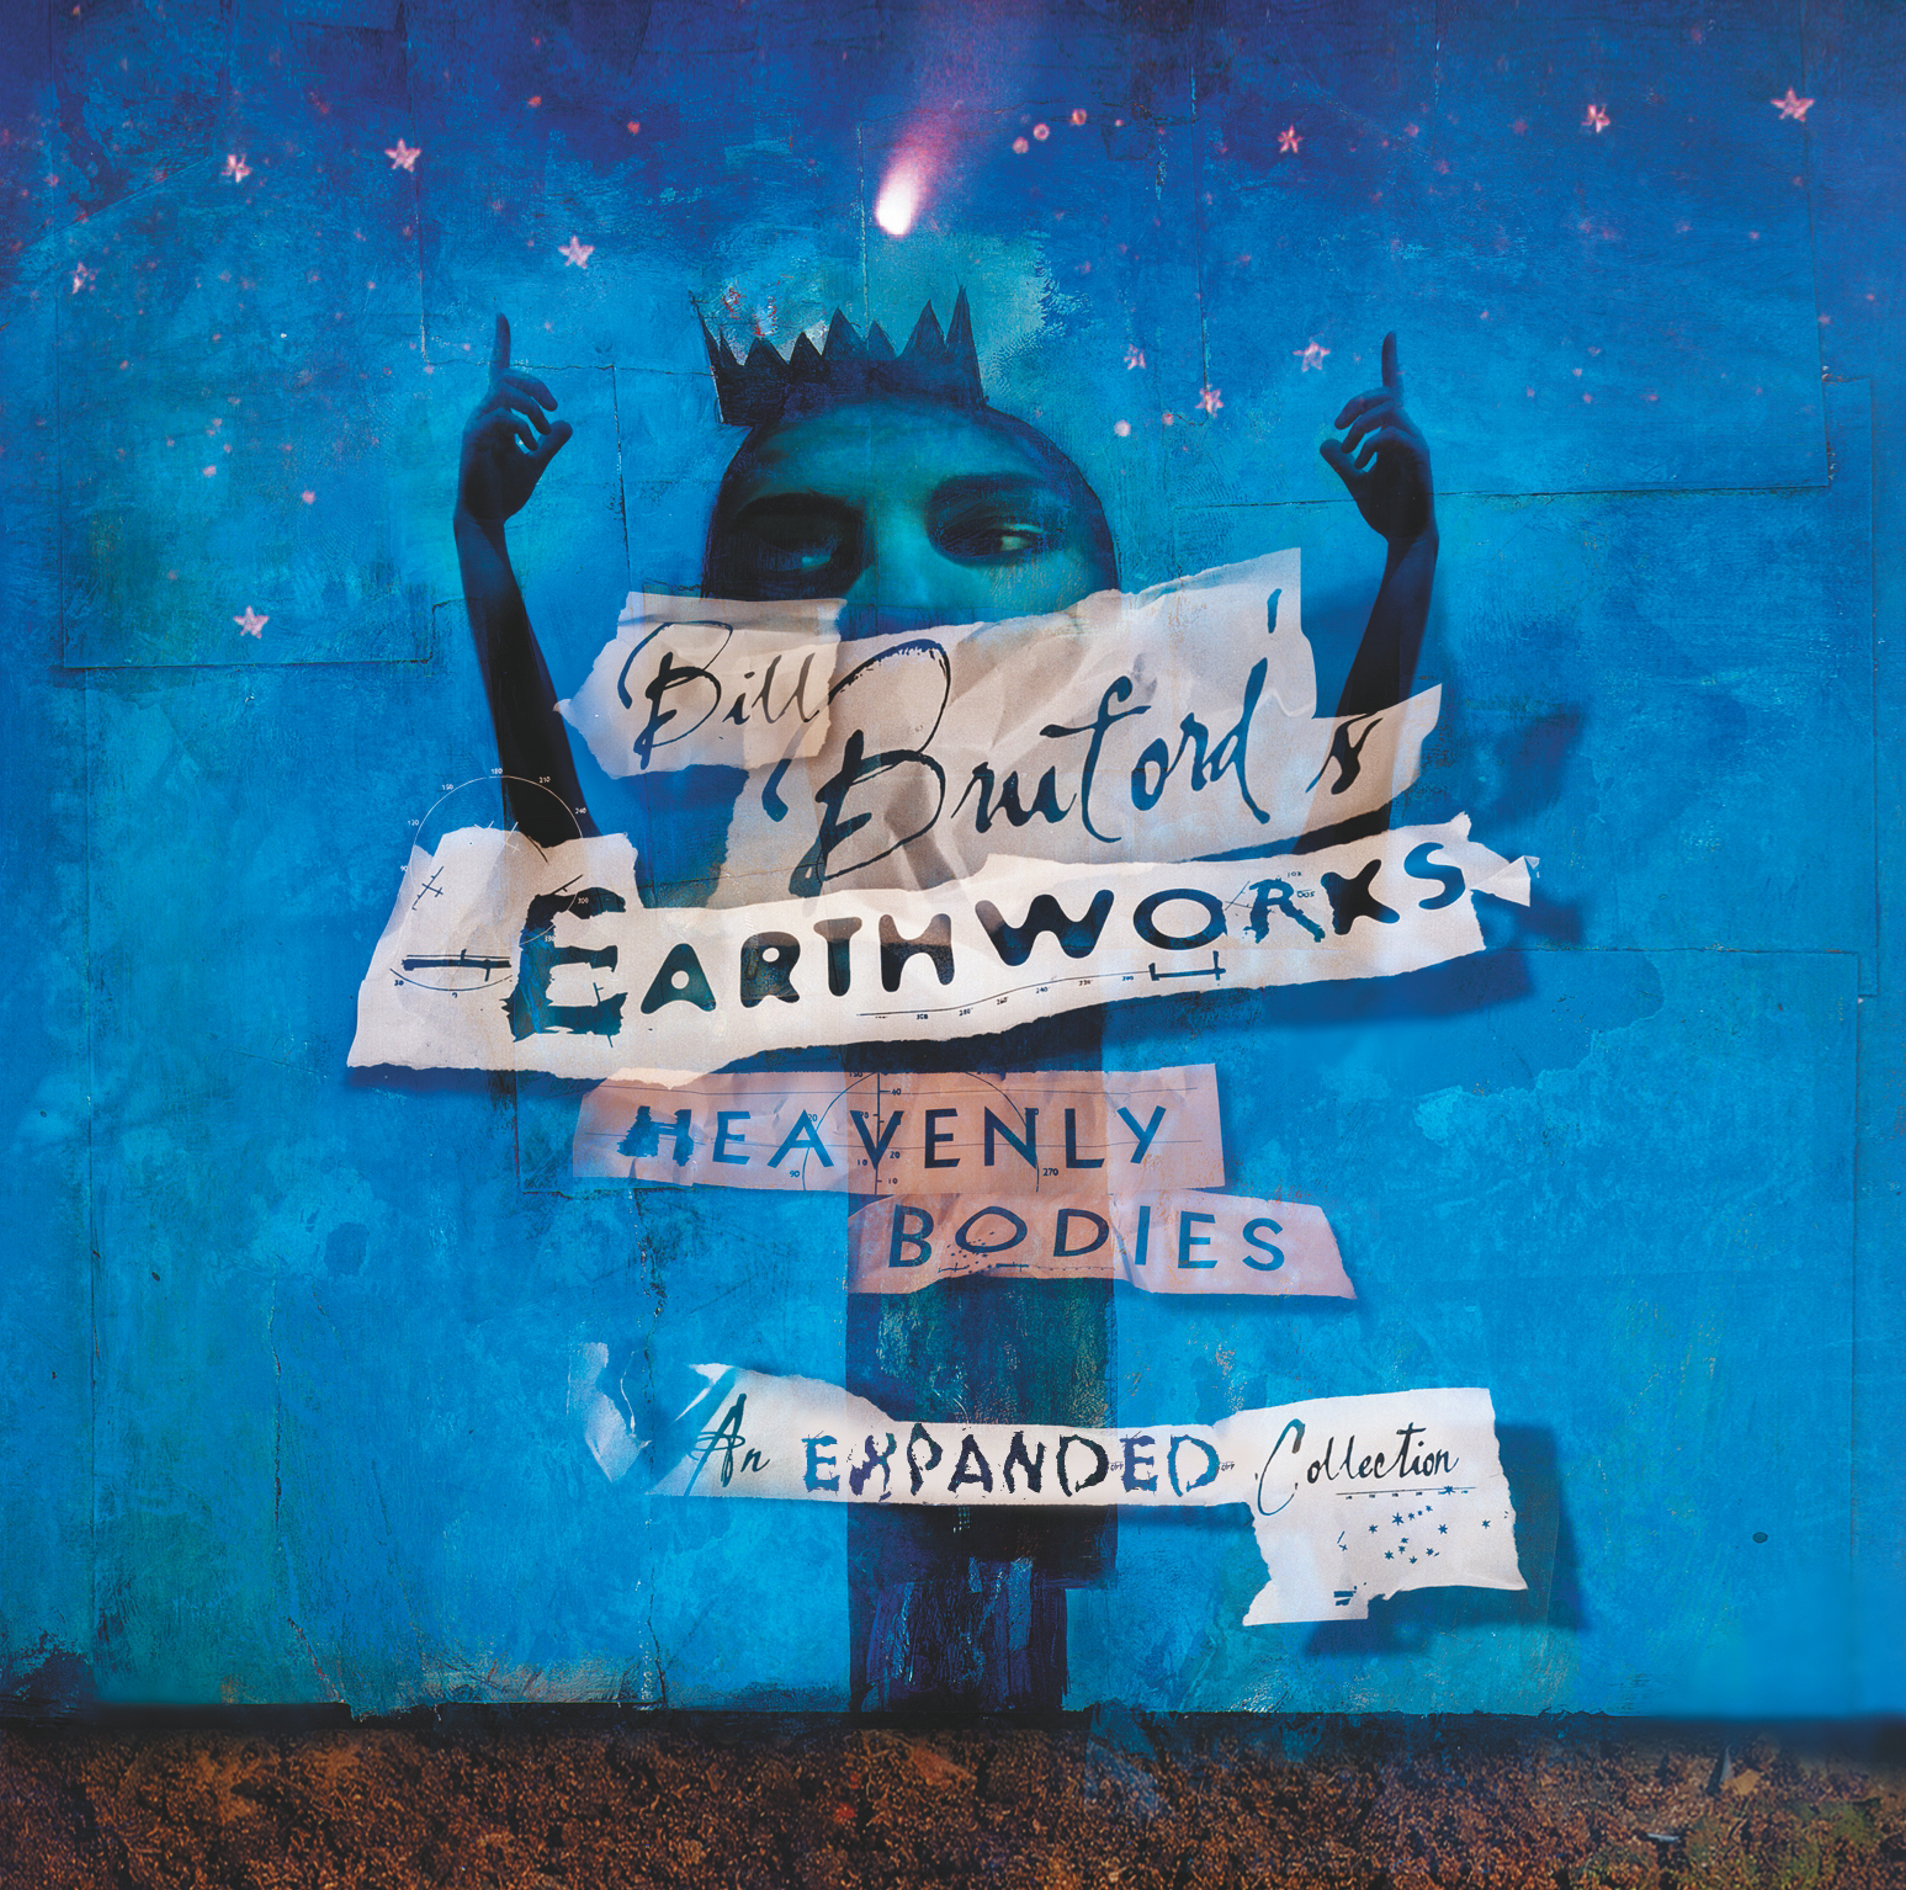 Bill Bruford Heavenly Bodies Earthworks